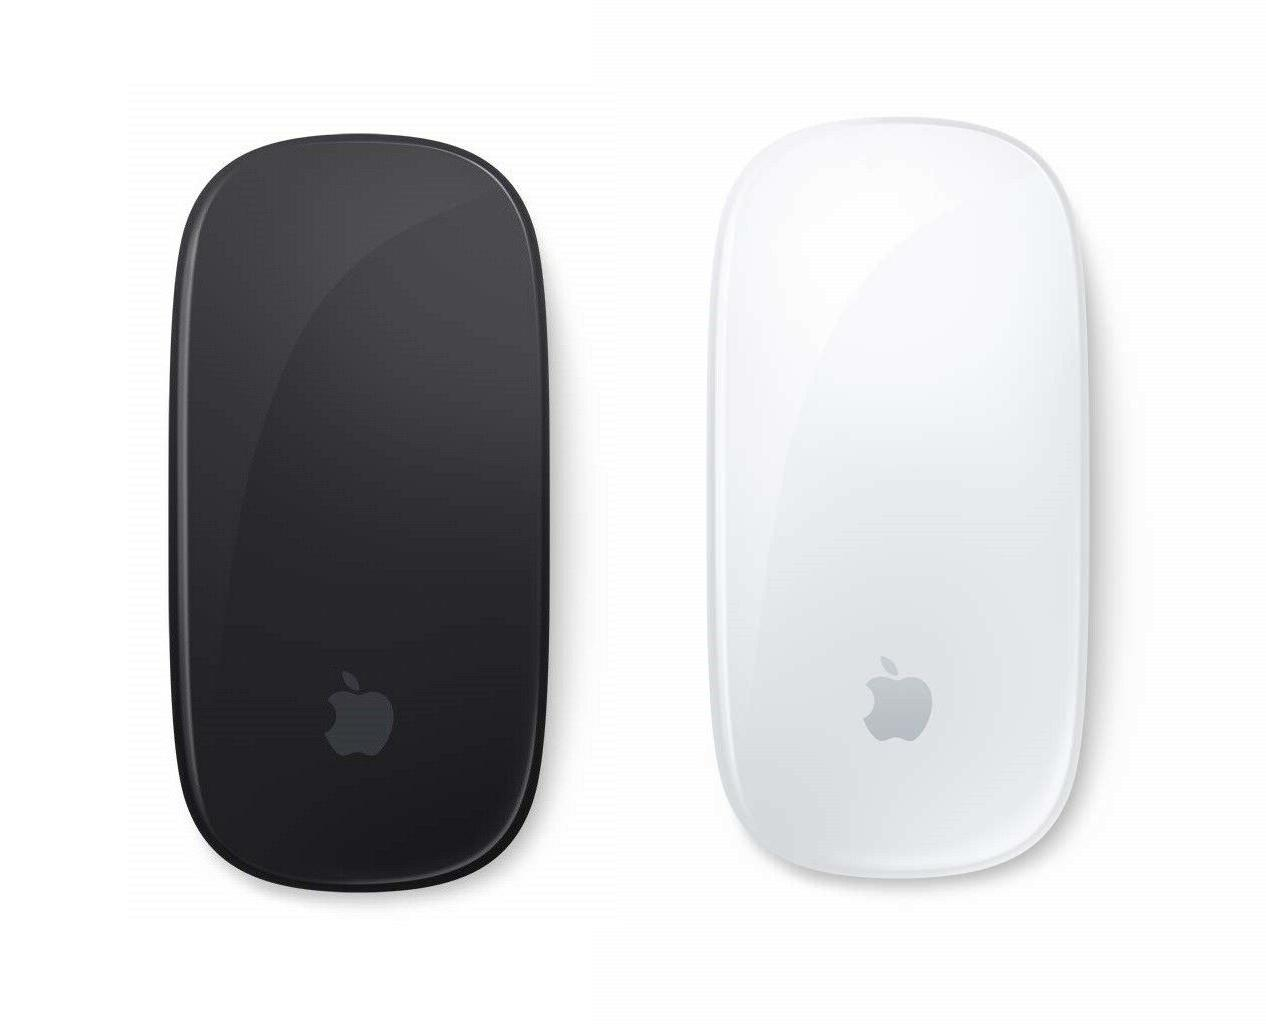 magic mouse 2 wireless rechargable space gray